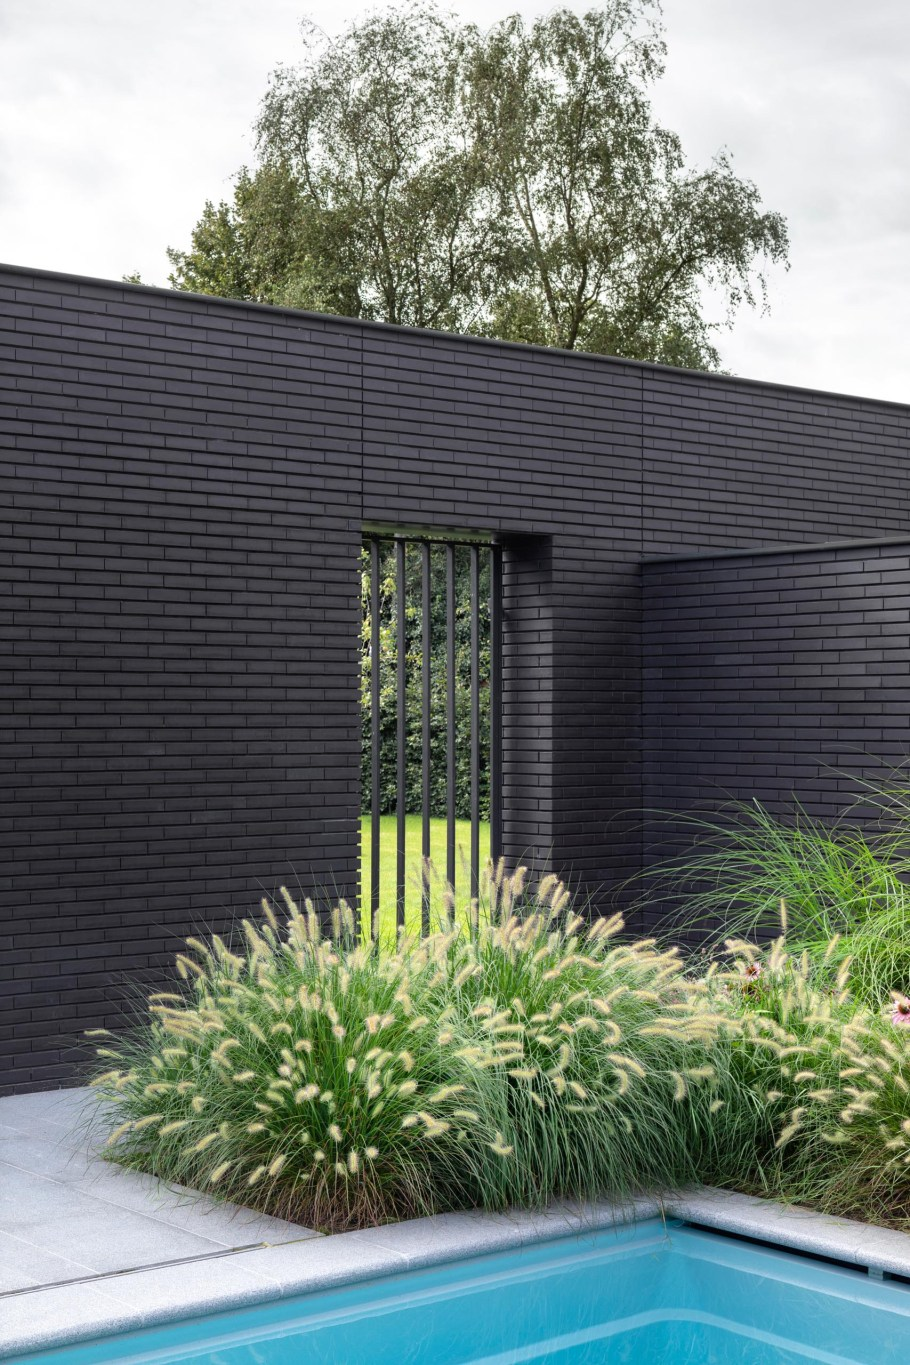 A black brick home exterior with lush gardens and a swimming pool.